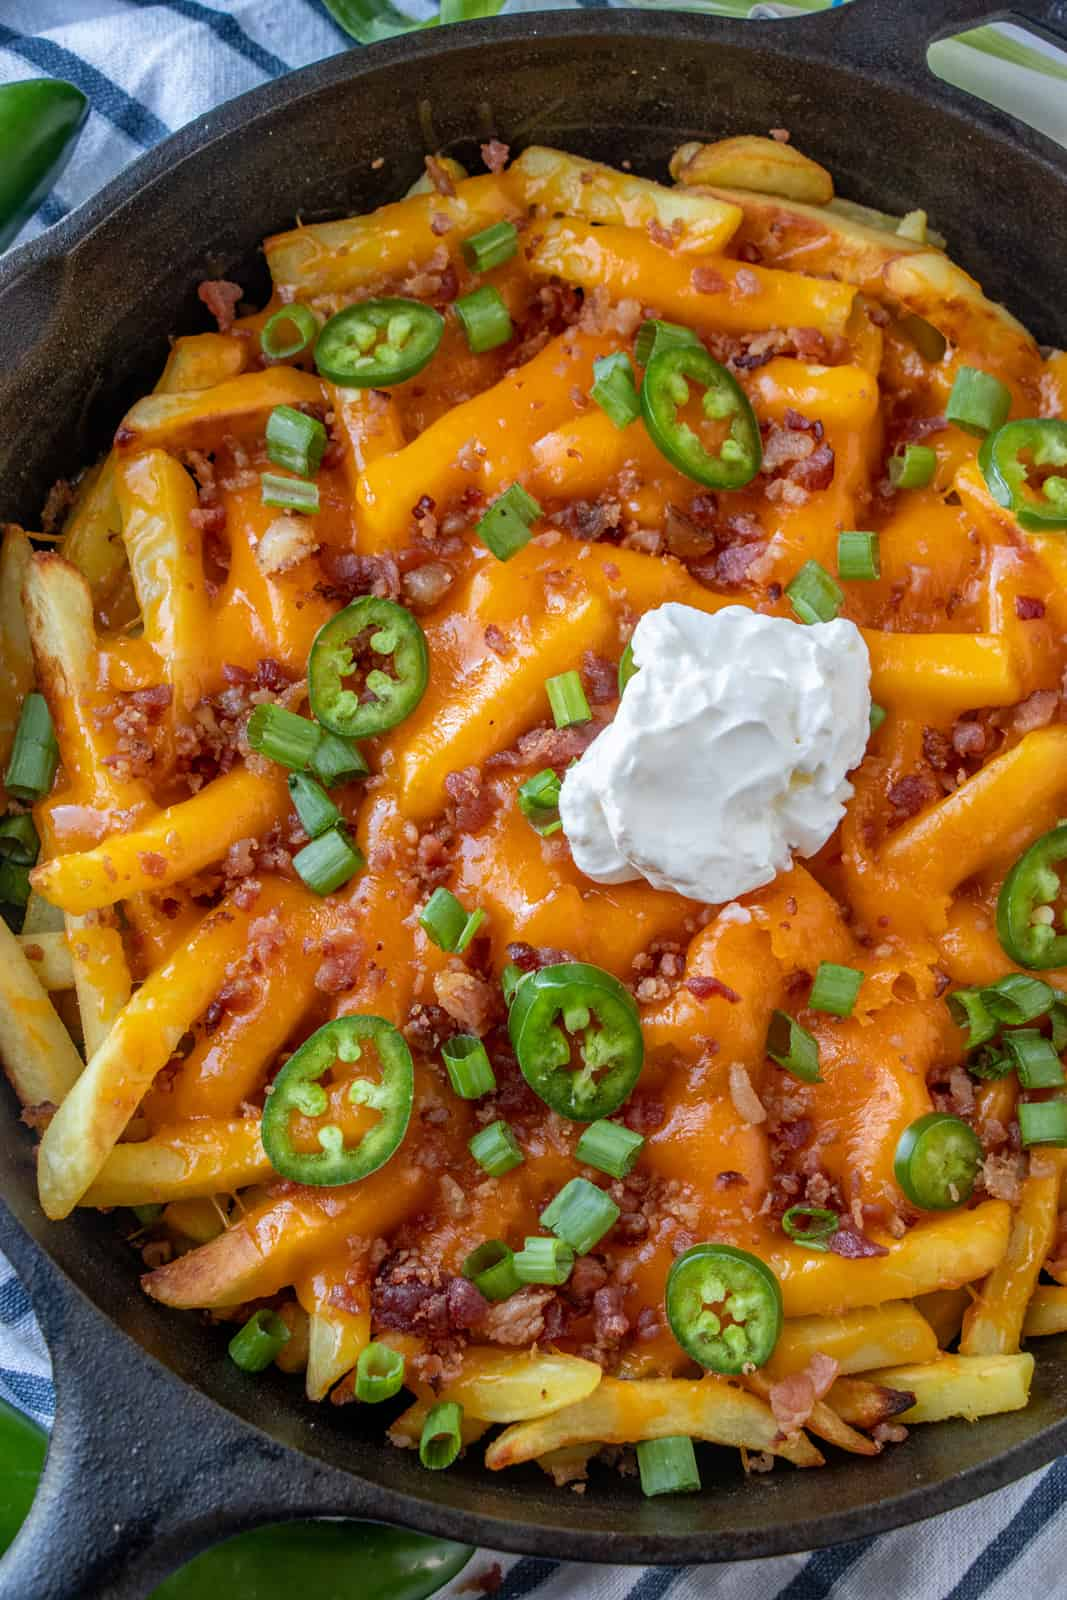 Overhead photo of Loaded Fries showing melted cheese and toppings